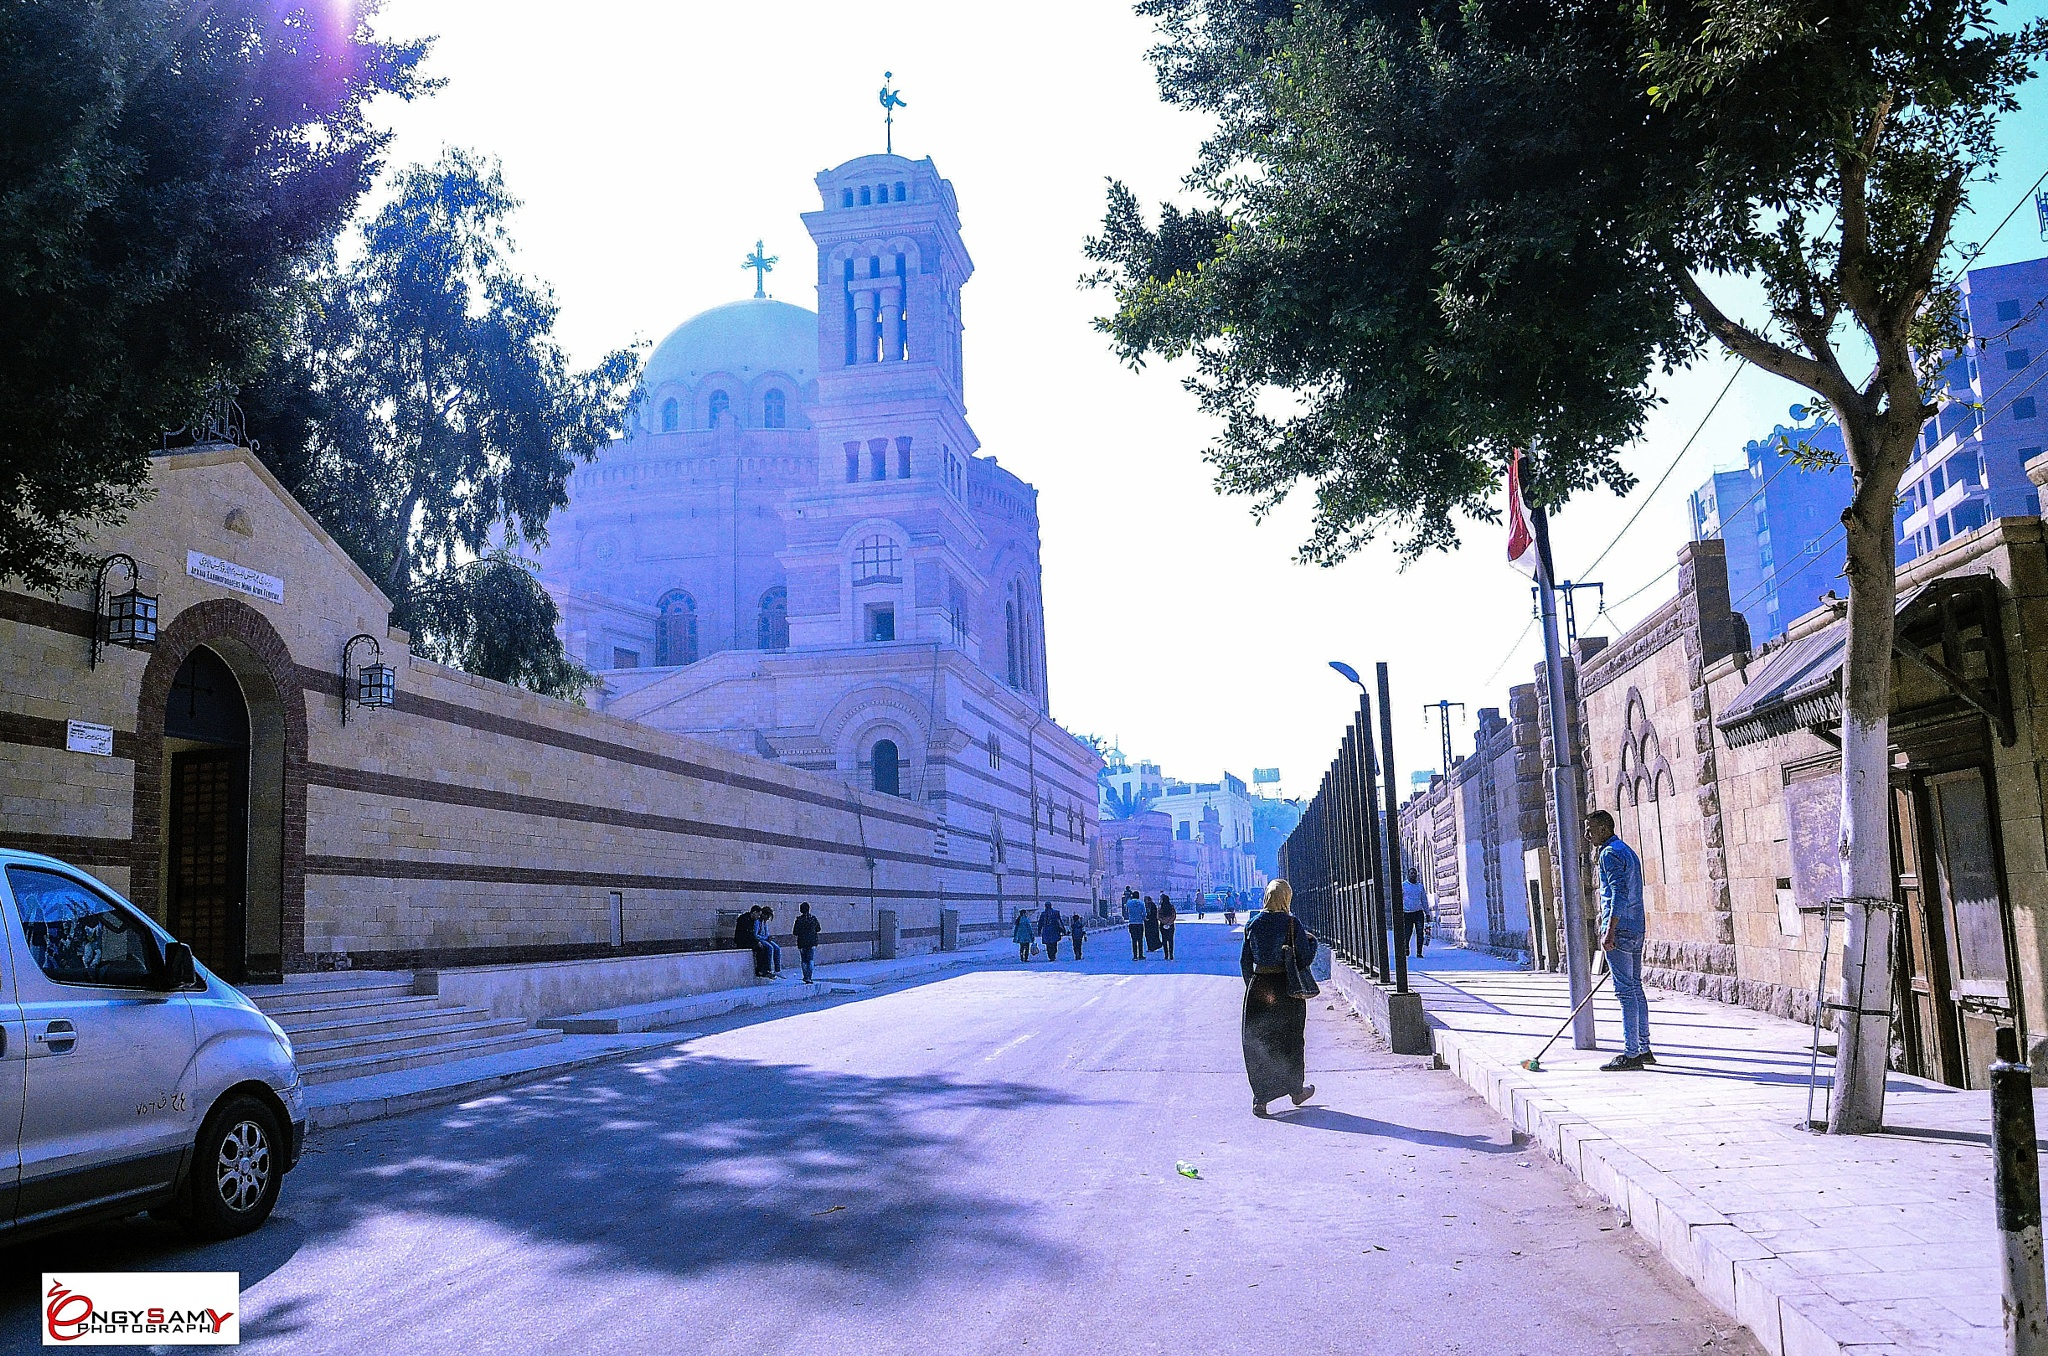 saint margerges church_old cairo by engy_samy